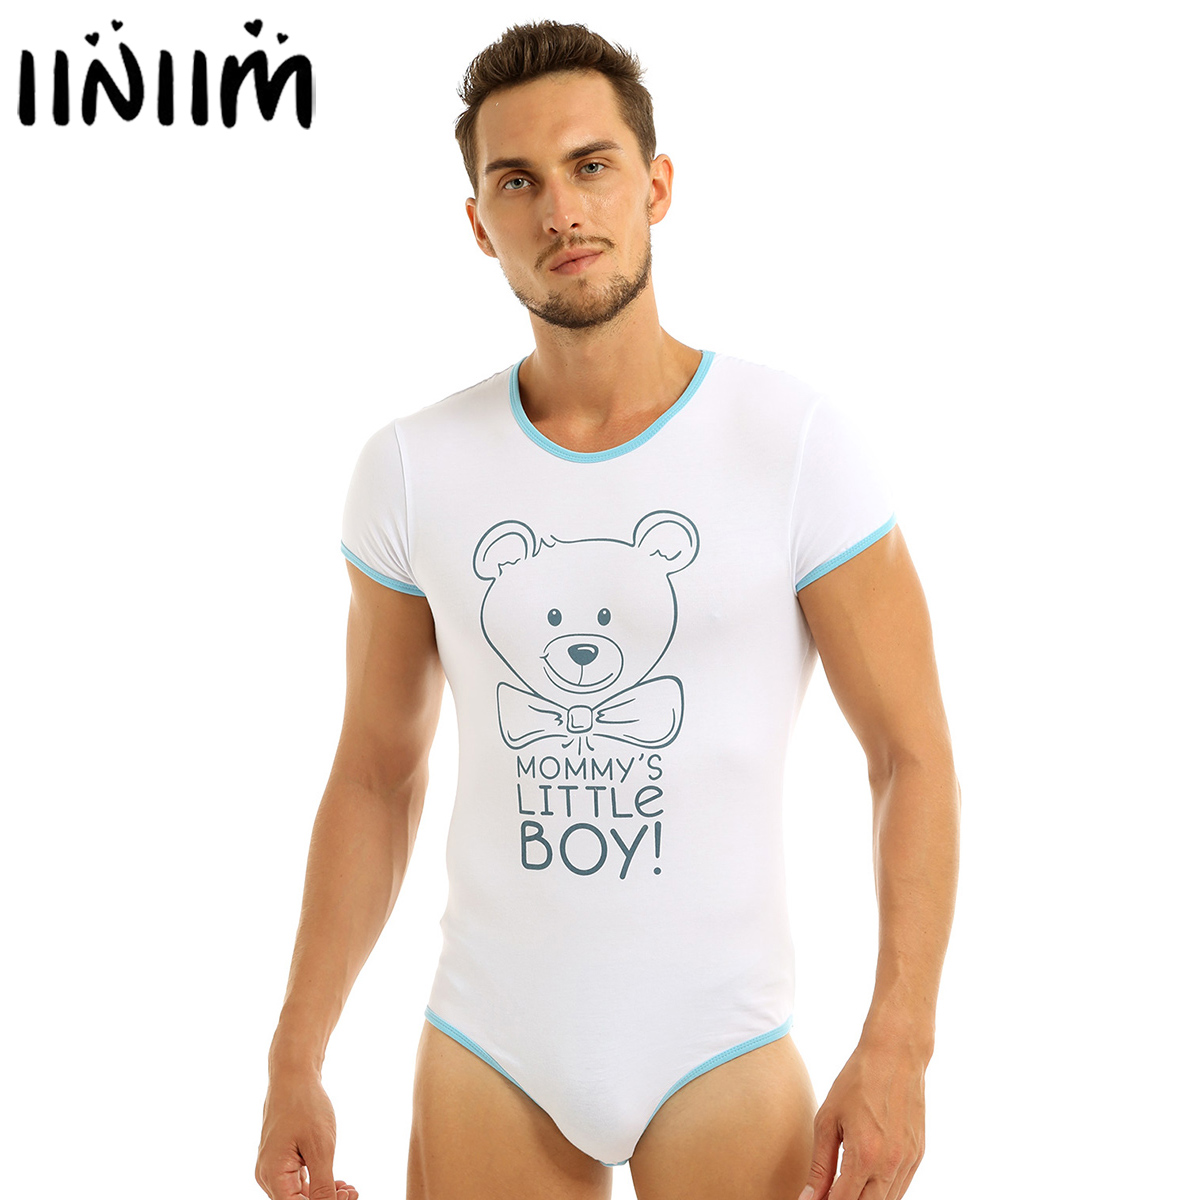 Iiniim Mens Adult Baby & Diaper Lover Lingerie Bodysuit Bodystocking Crotch Front Printed Sissy Gay Male Bodysuit Romper Pajamas